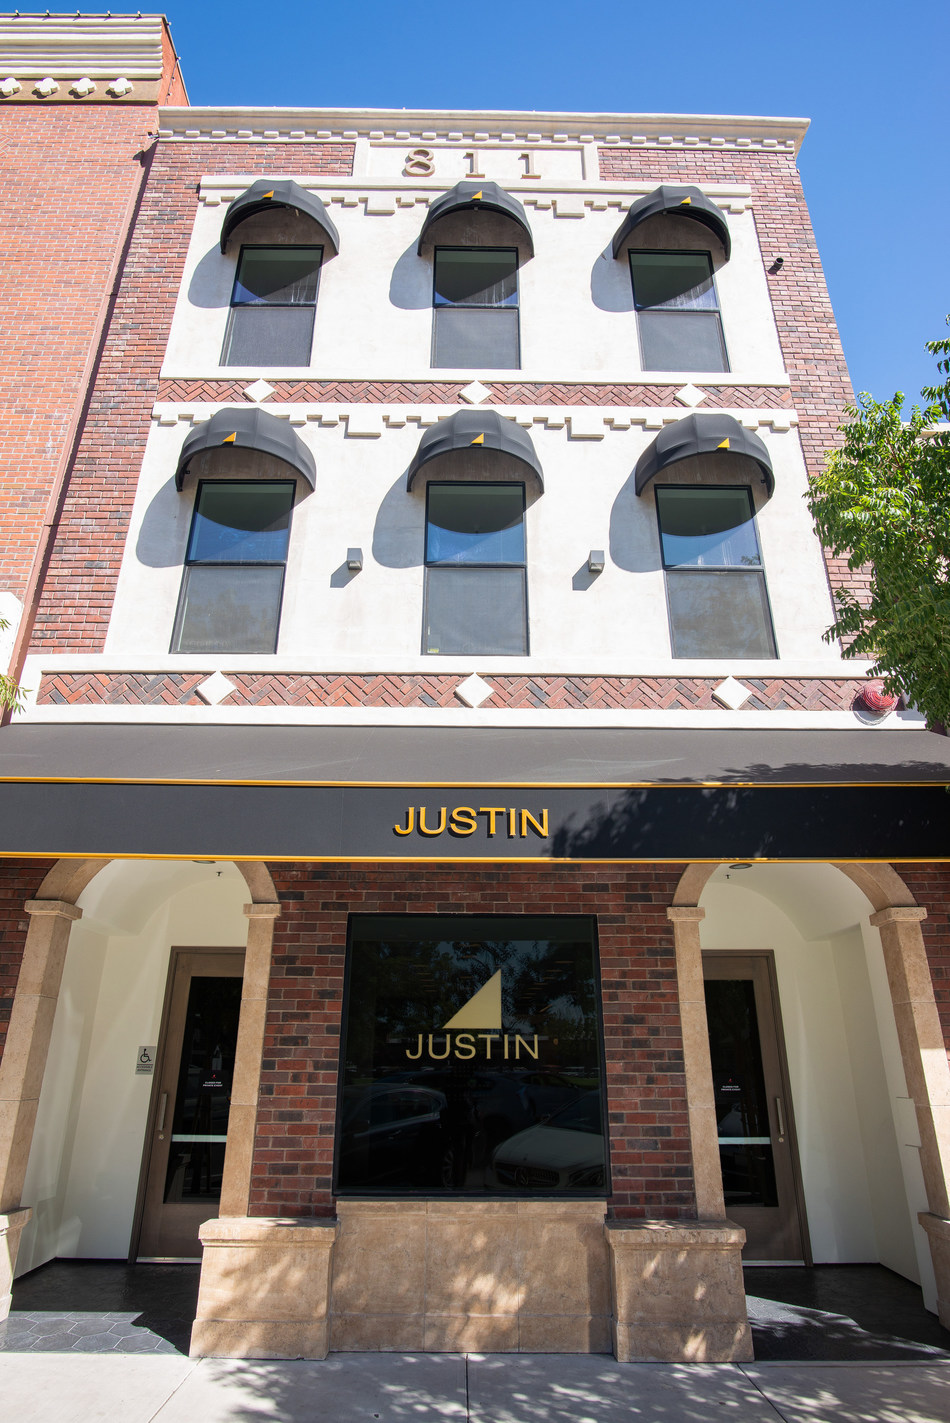 JUSTIN Vineyards & Winery Expands Brand Footprint with New Tasting Room in the Heart of Downtown Paso Robles (Photo Source: Rich Prugh)